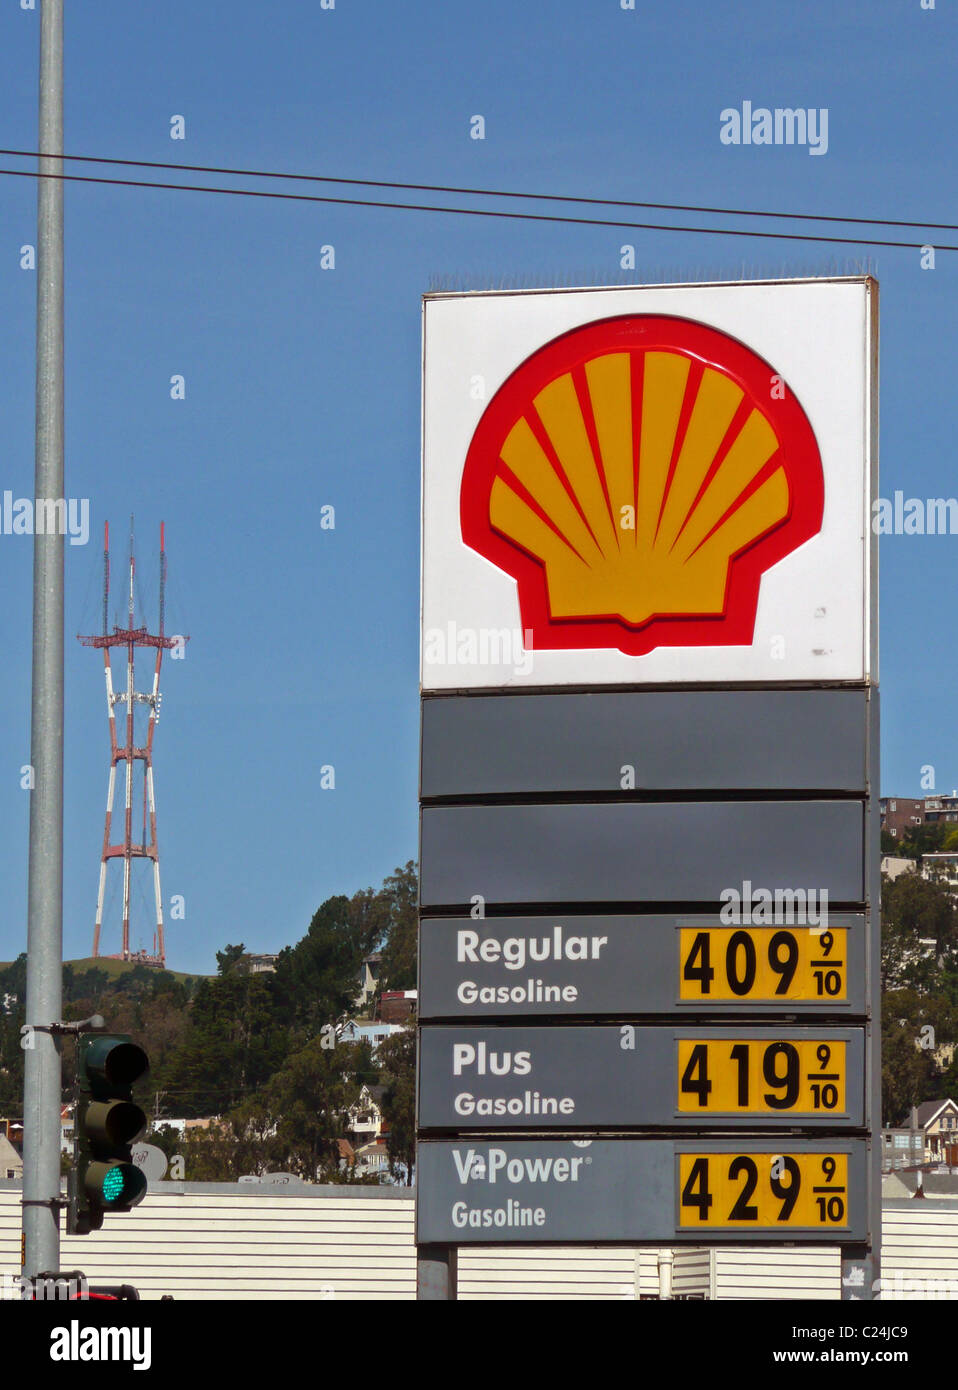 Gas Station Prices >> Shell Gas Station Sign Showing Gasoline Prices Over 4 Per Gallon